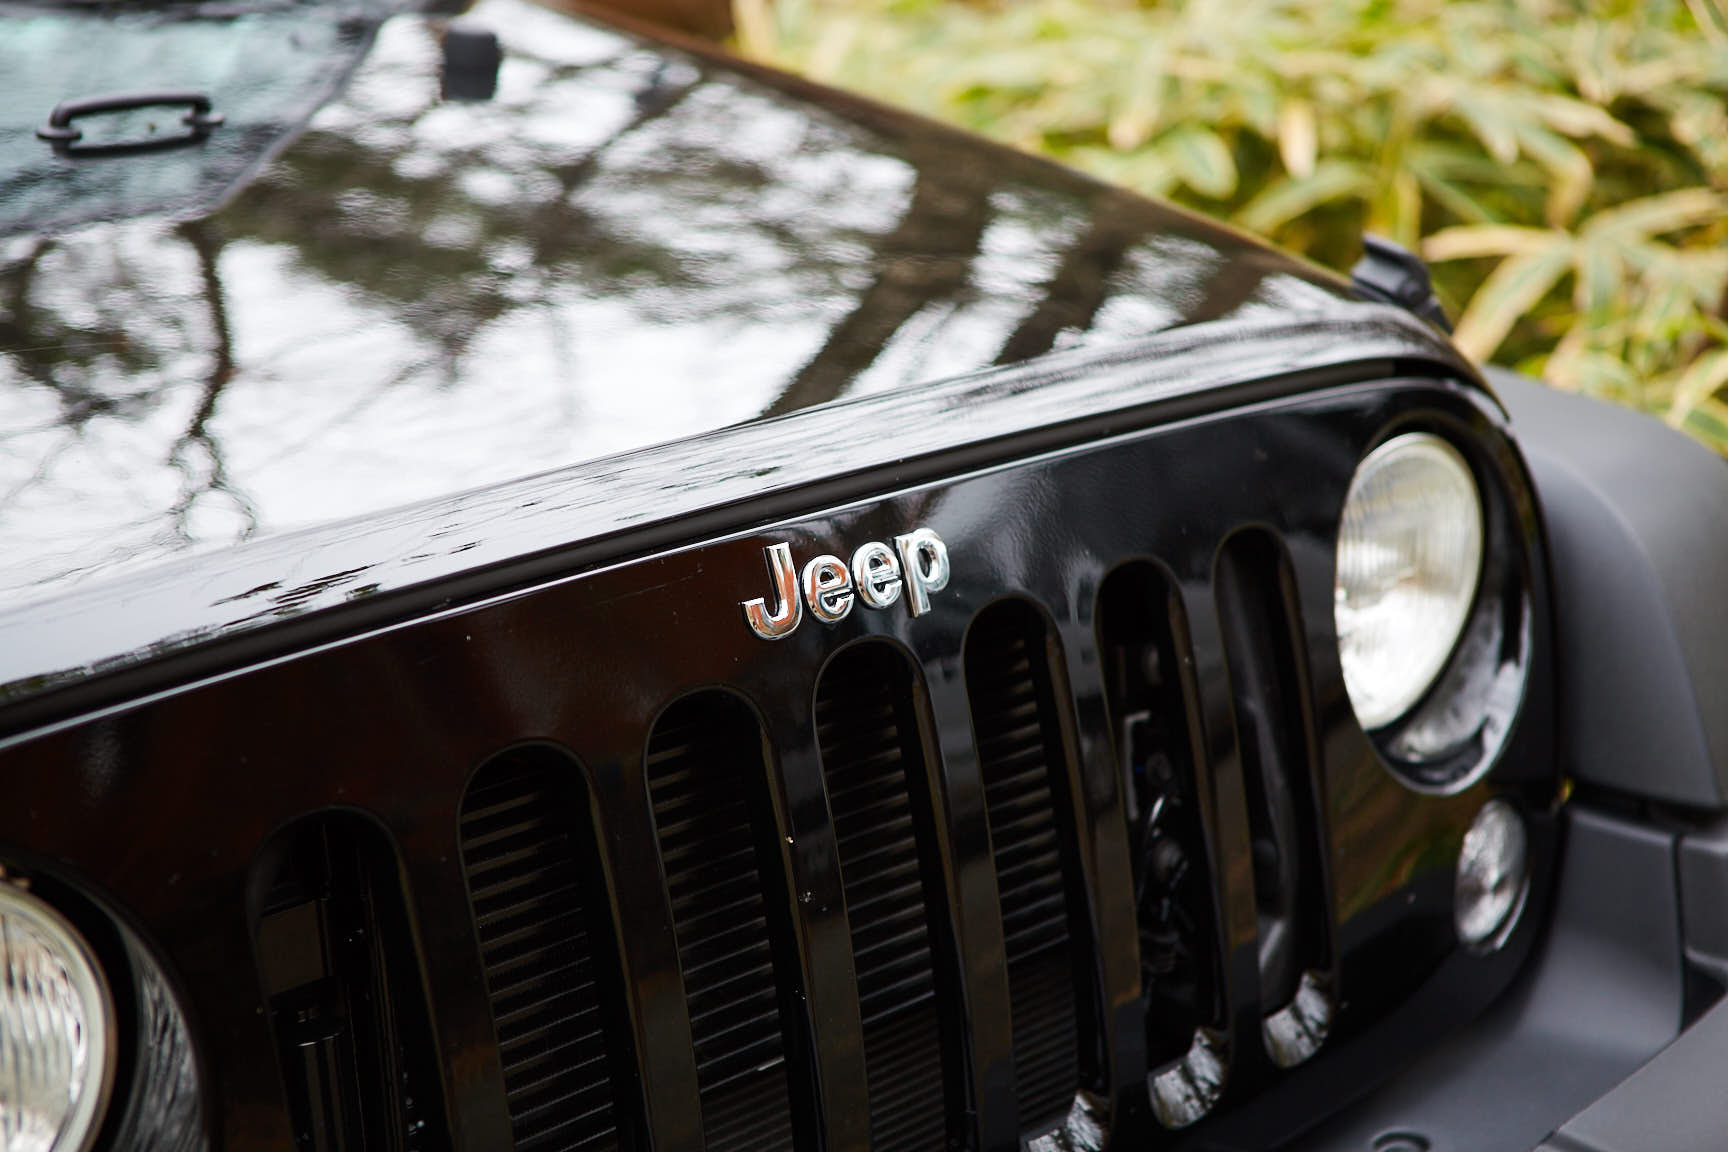 aj_449-1 My Jeep®,My Life. ボクとJeep®の暮らしかた。シェフ・相場正一郎